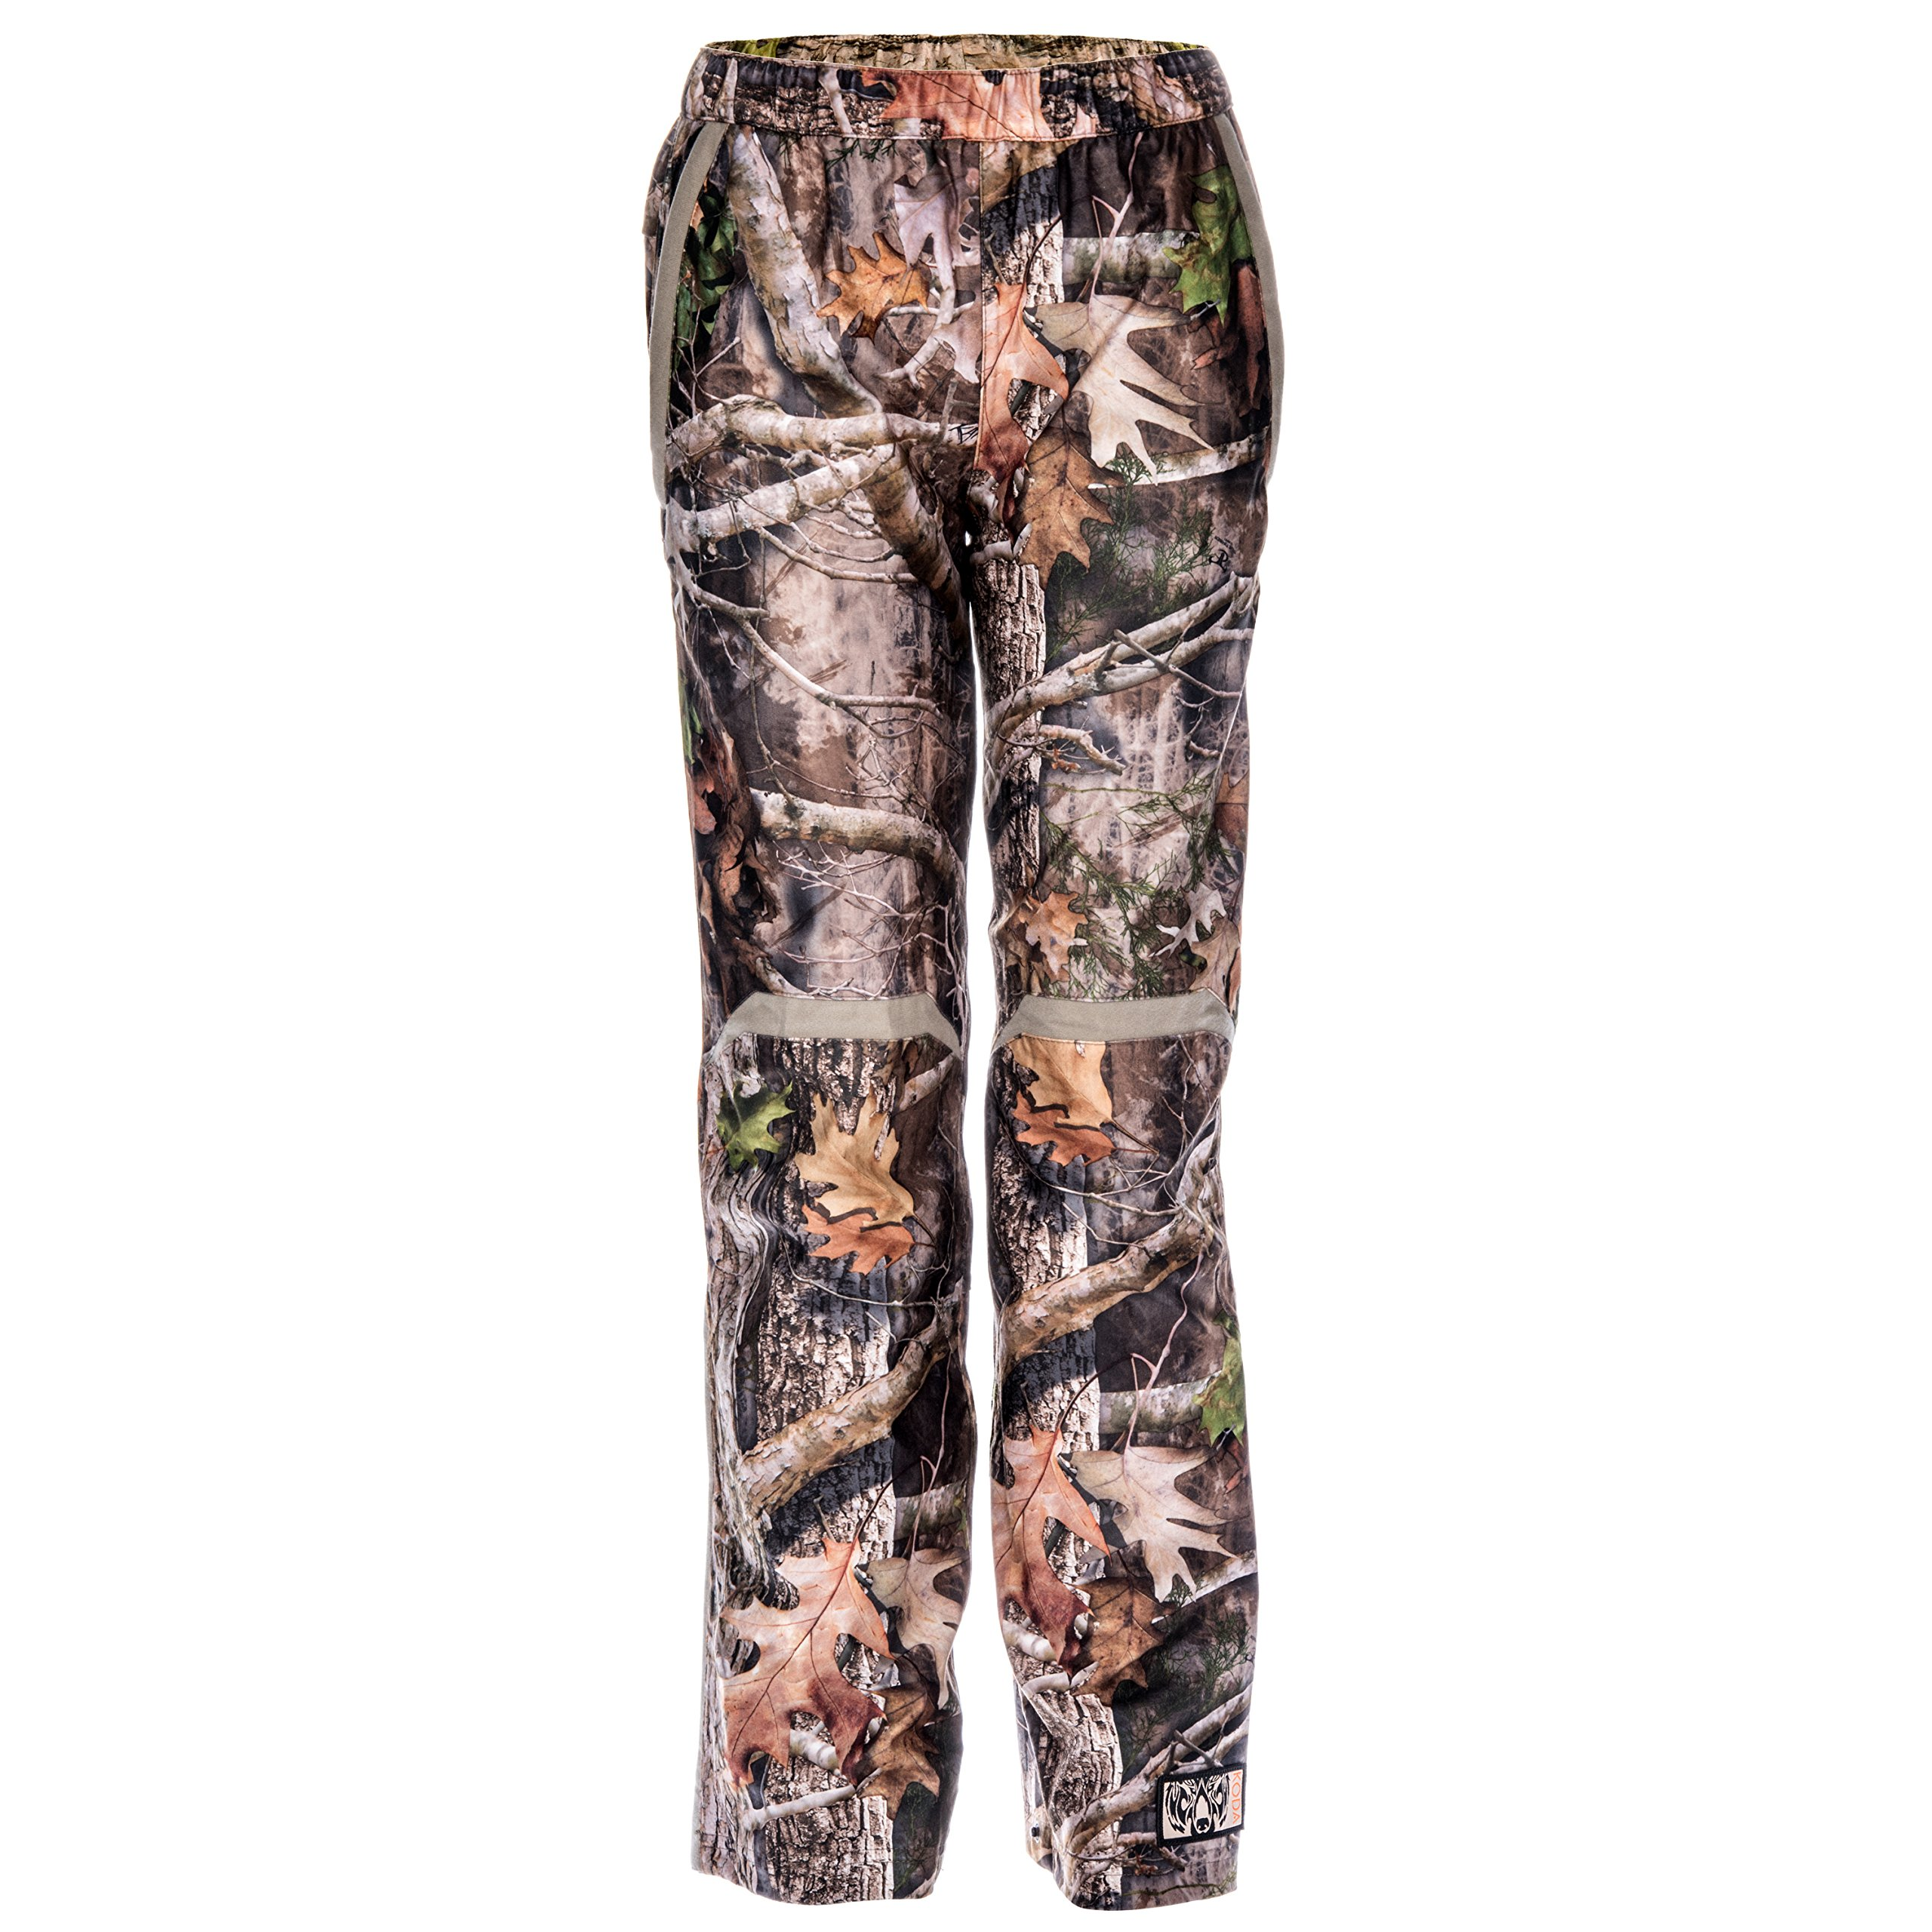 Koda Adventure Gear Kids True Timber Hardshell Camo Hunting Pant, Kanati, XL by Koda Adventure Gear